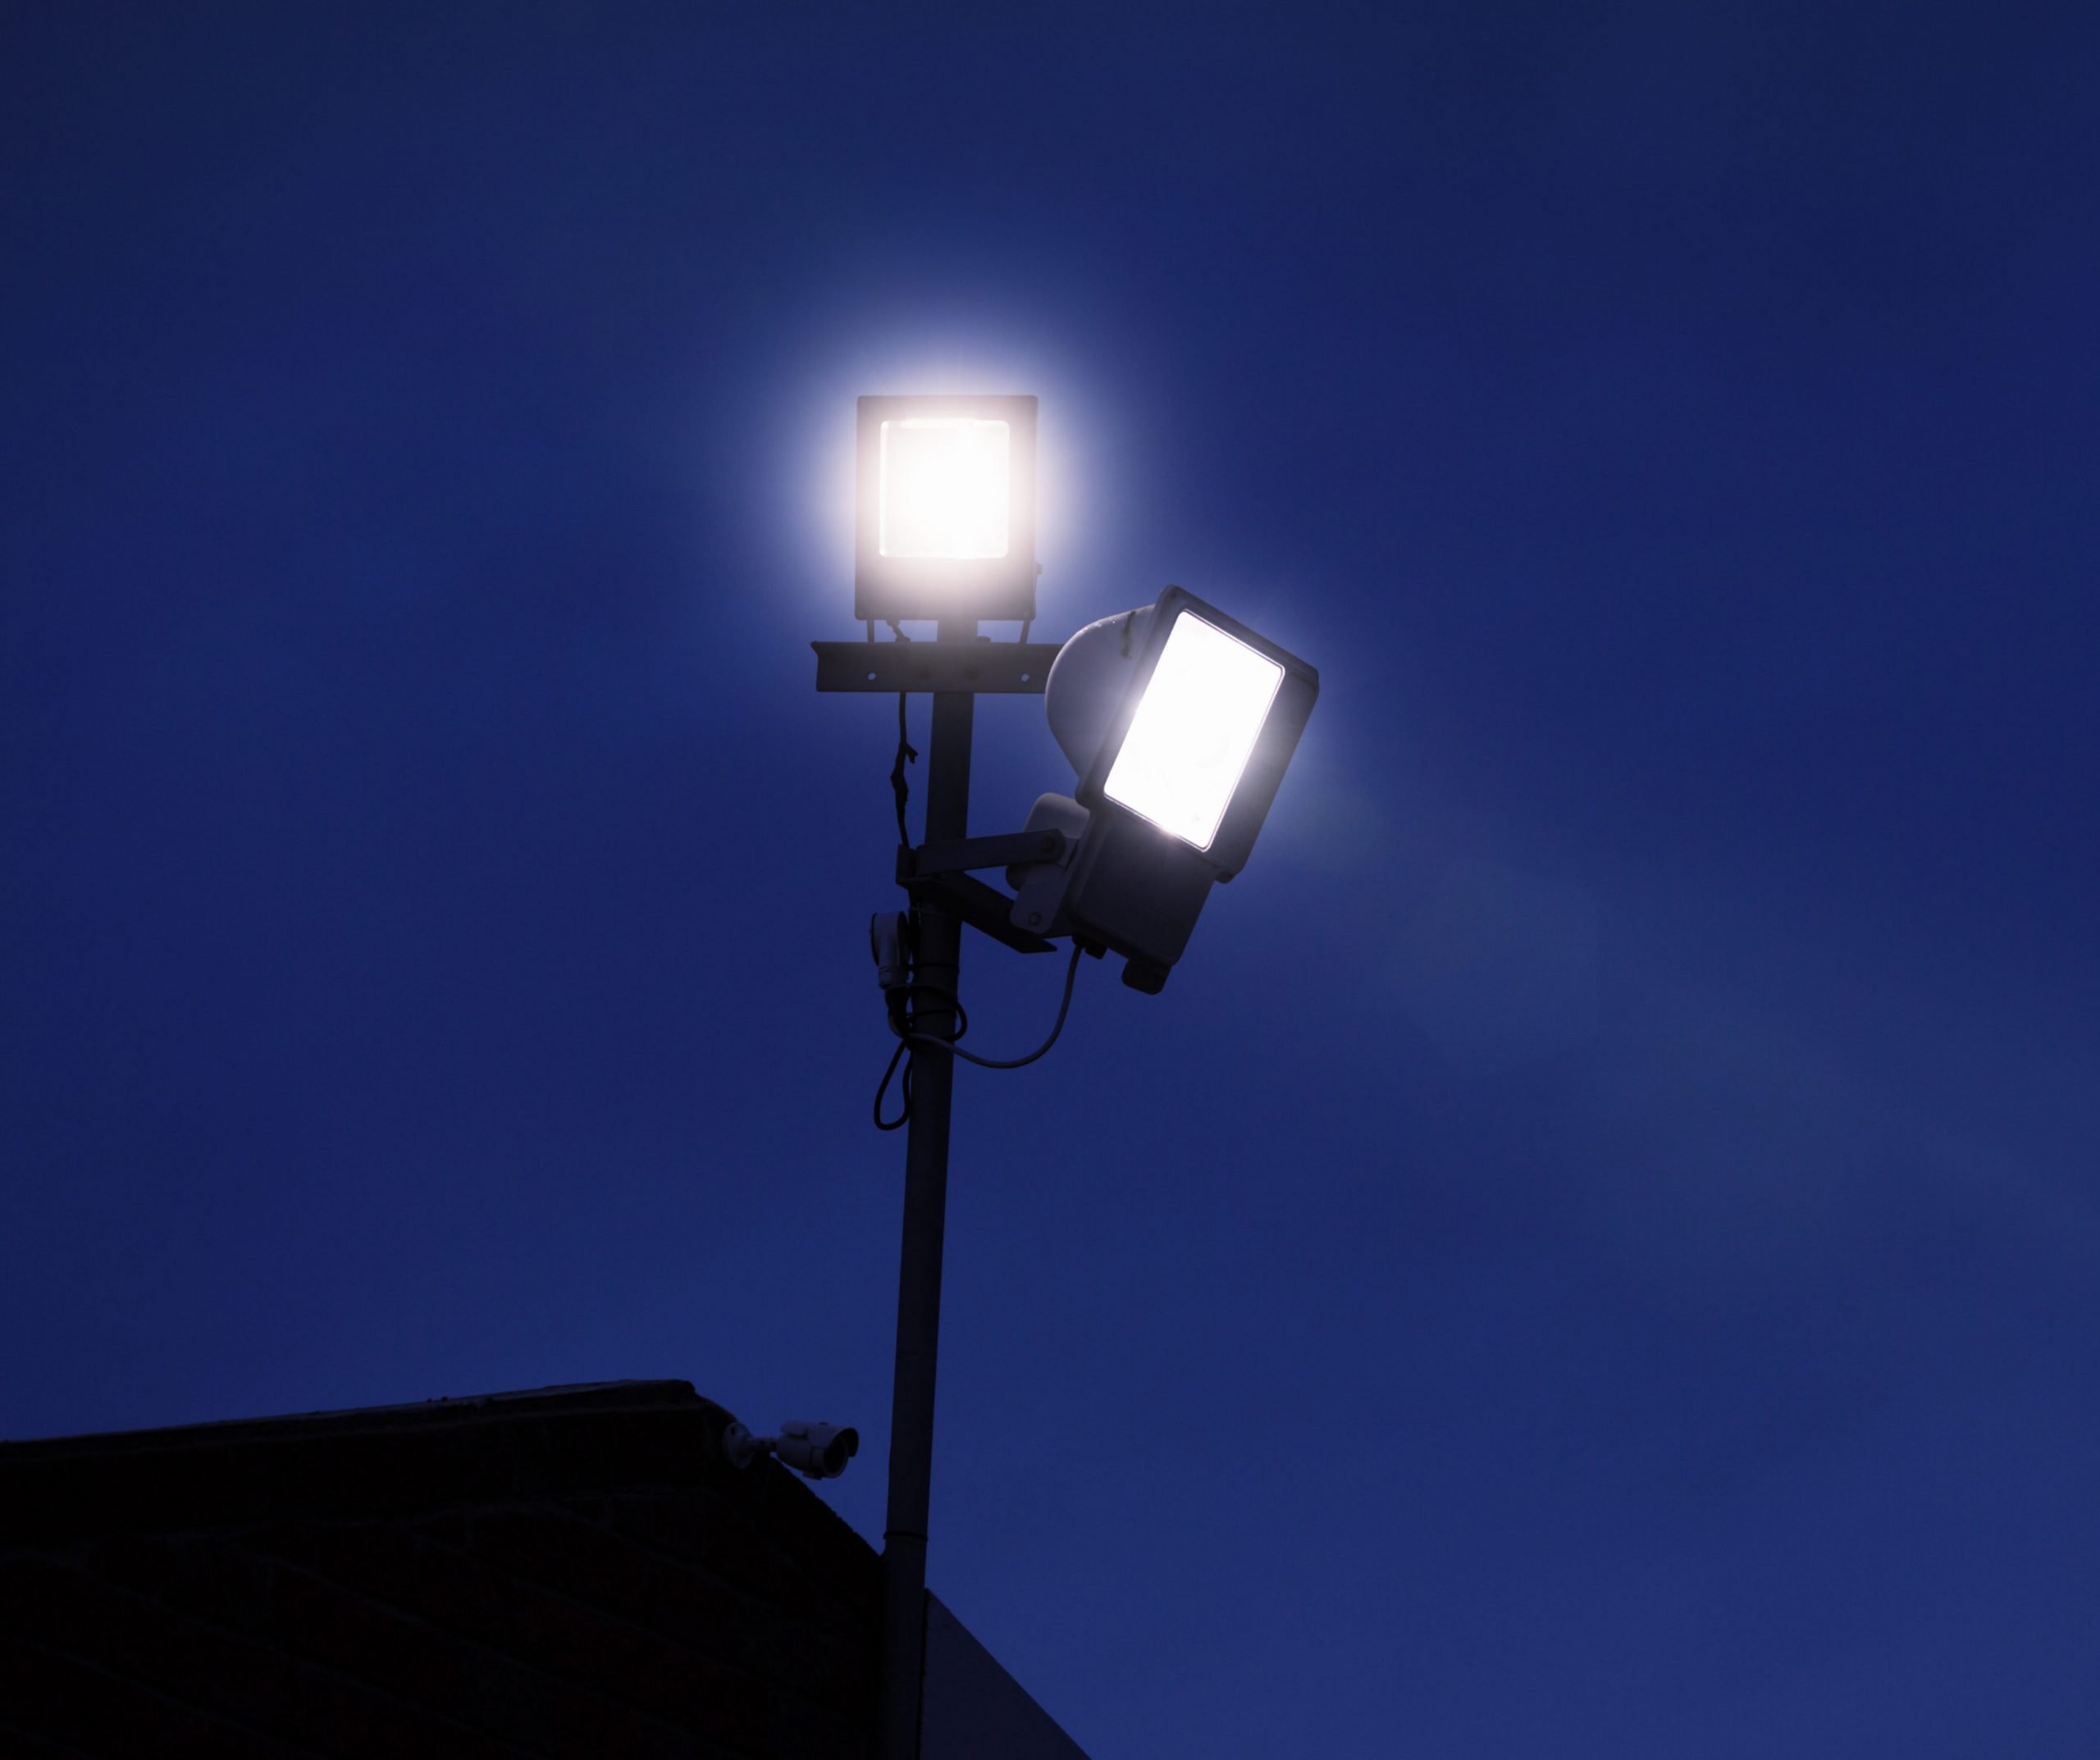 Light pollution impacts on the Black community